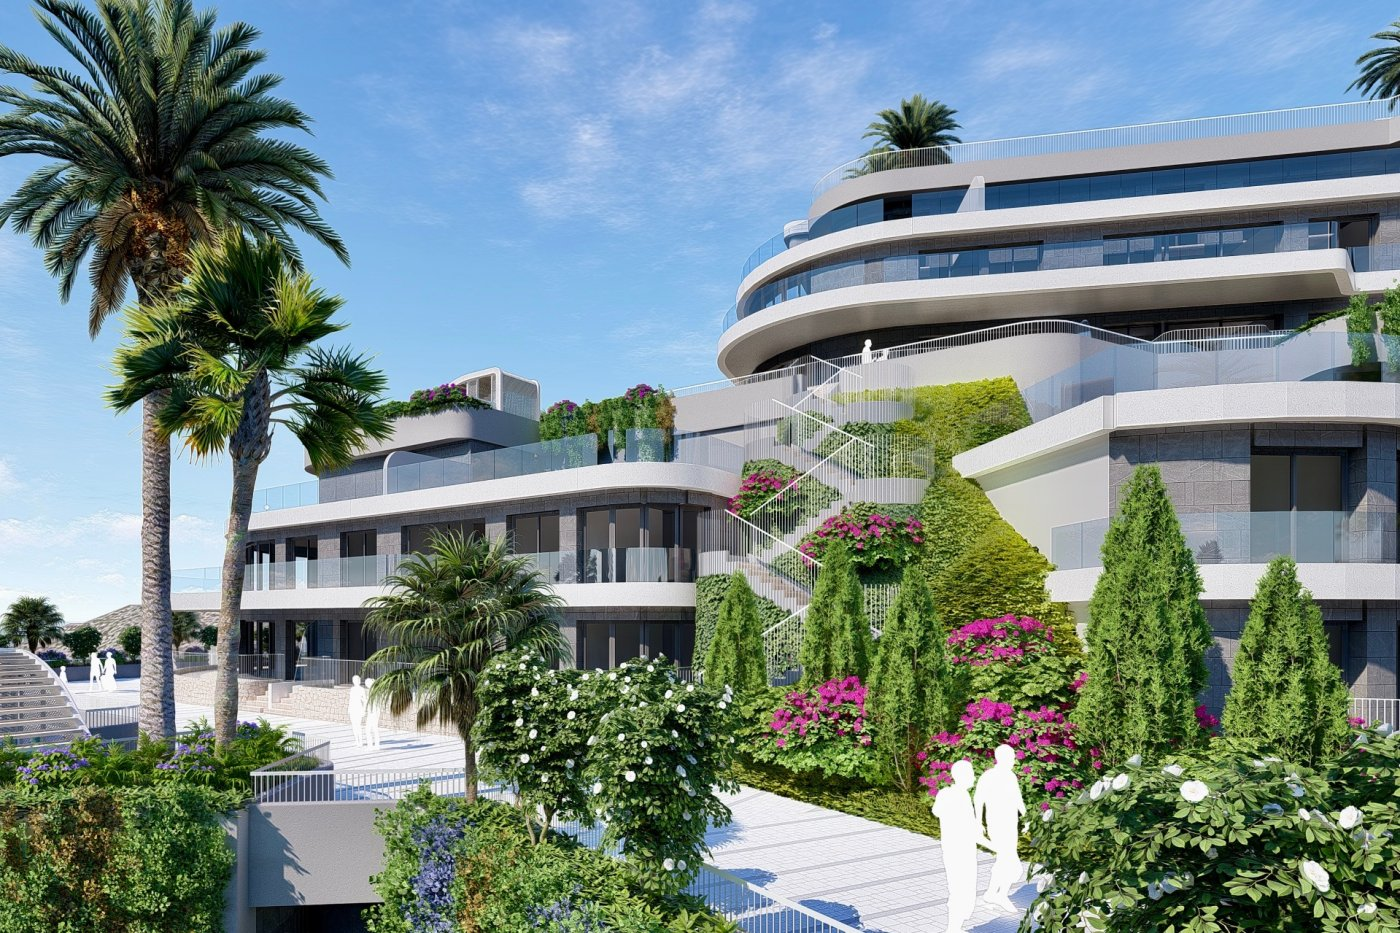 Gallery Image 16 of Fantastic panoramic views from this luxury 3 bed 2 bath and 39 m2 southwest facing terrasse